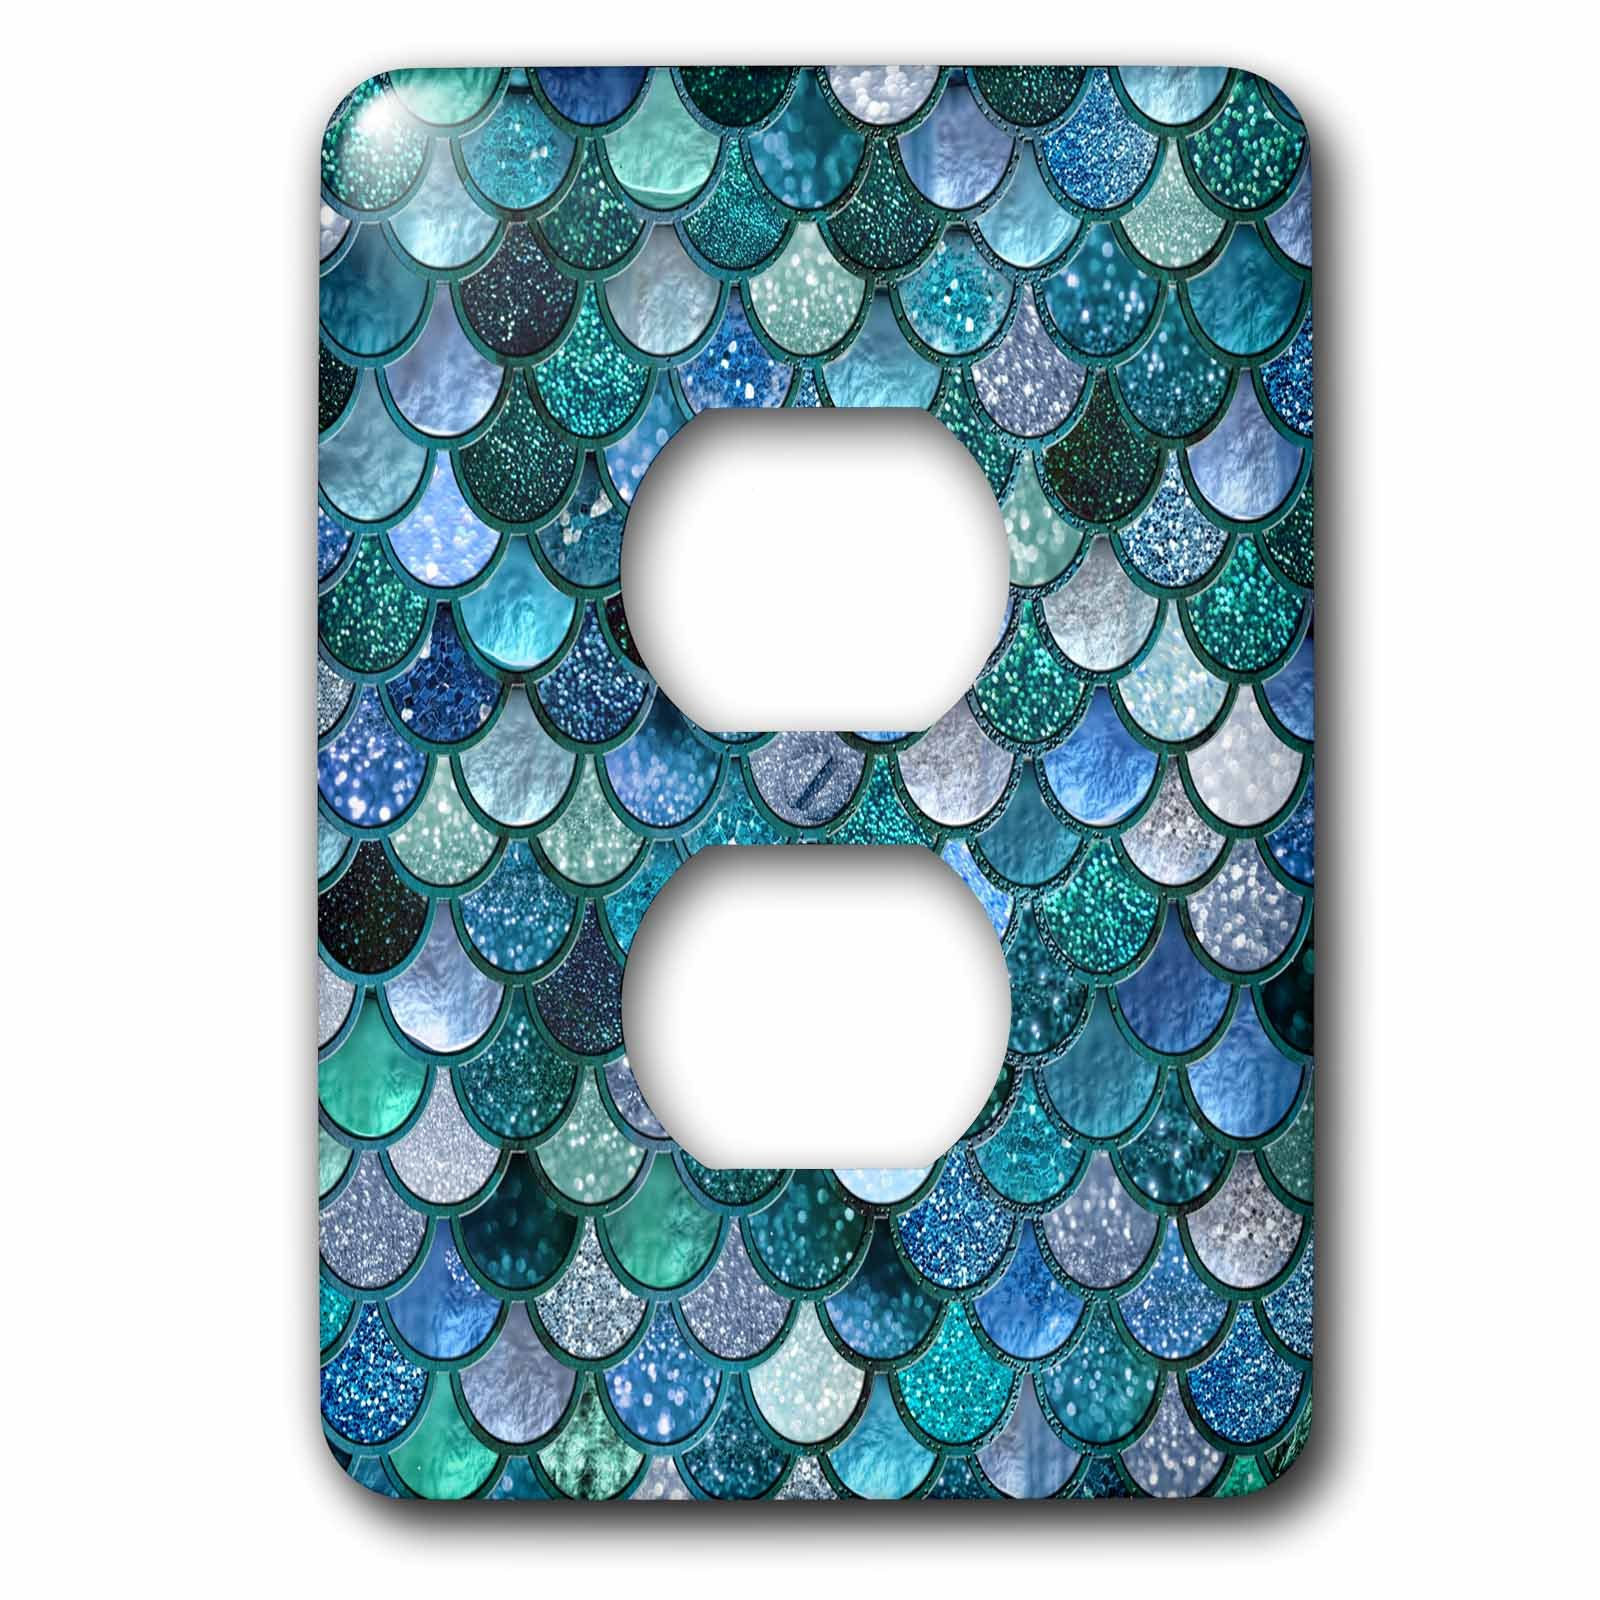 3dRose LSP_272861_6 Multicolor Girly Trend Blue Luxury Elegant Mermaid Scales Glitter Plug Outlet Cover